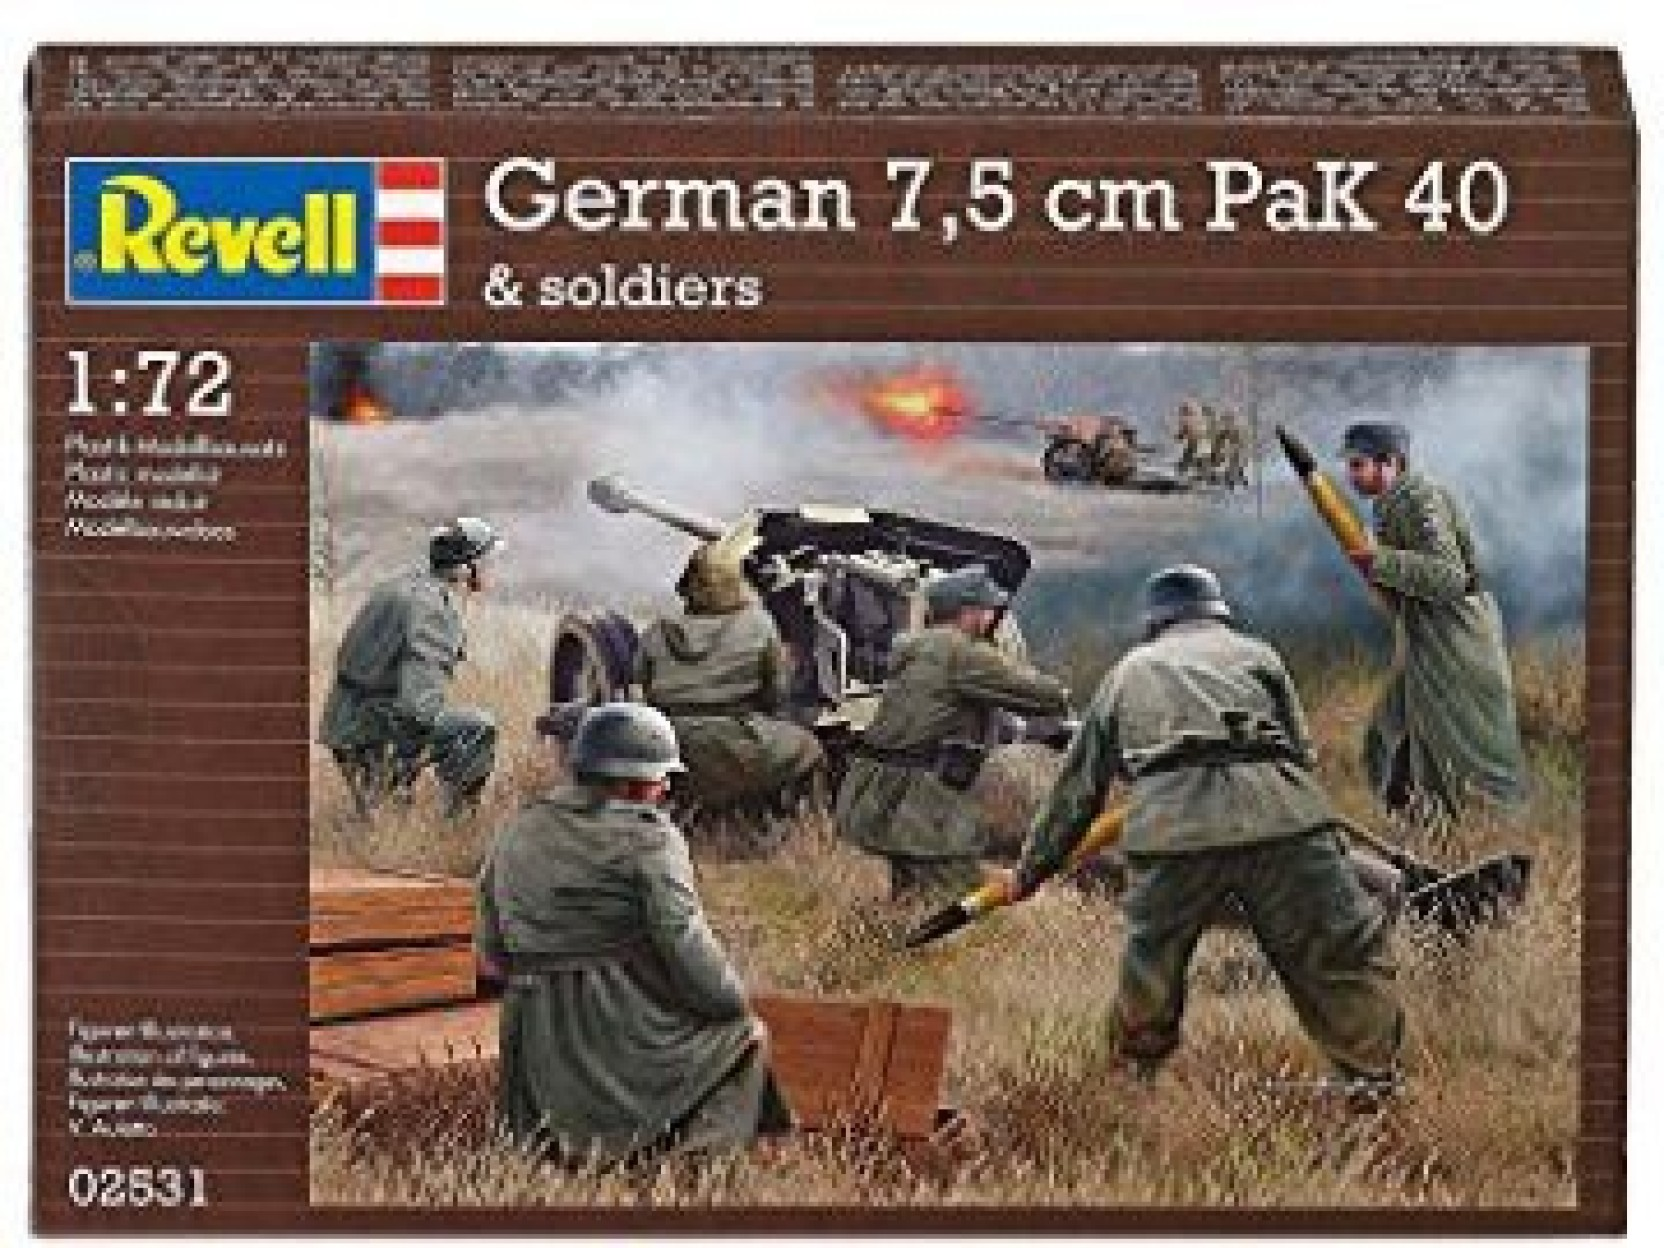 Revell Germany Kids 1/72 German Pak 40 With Soldiers Model